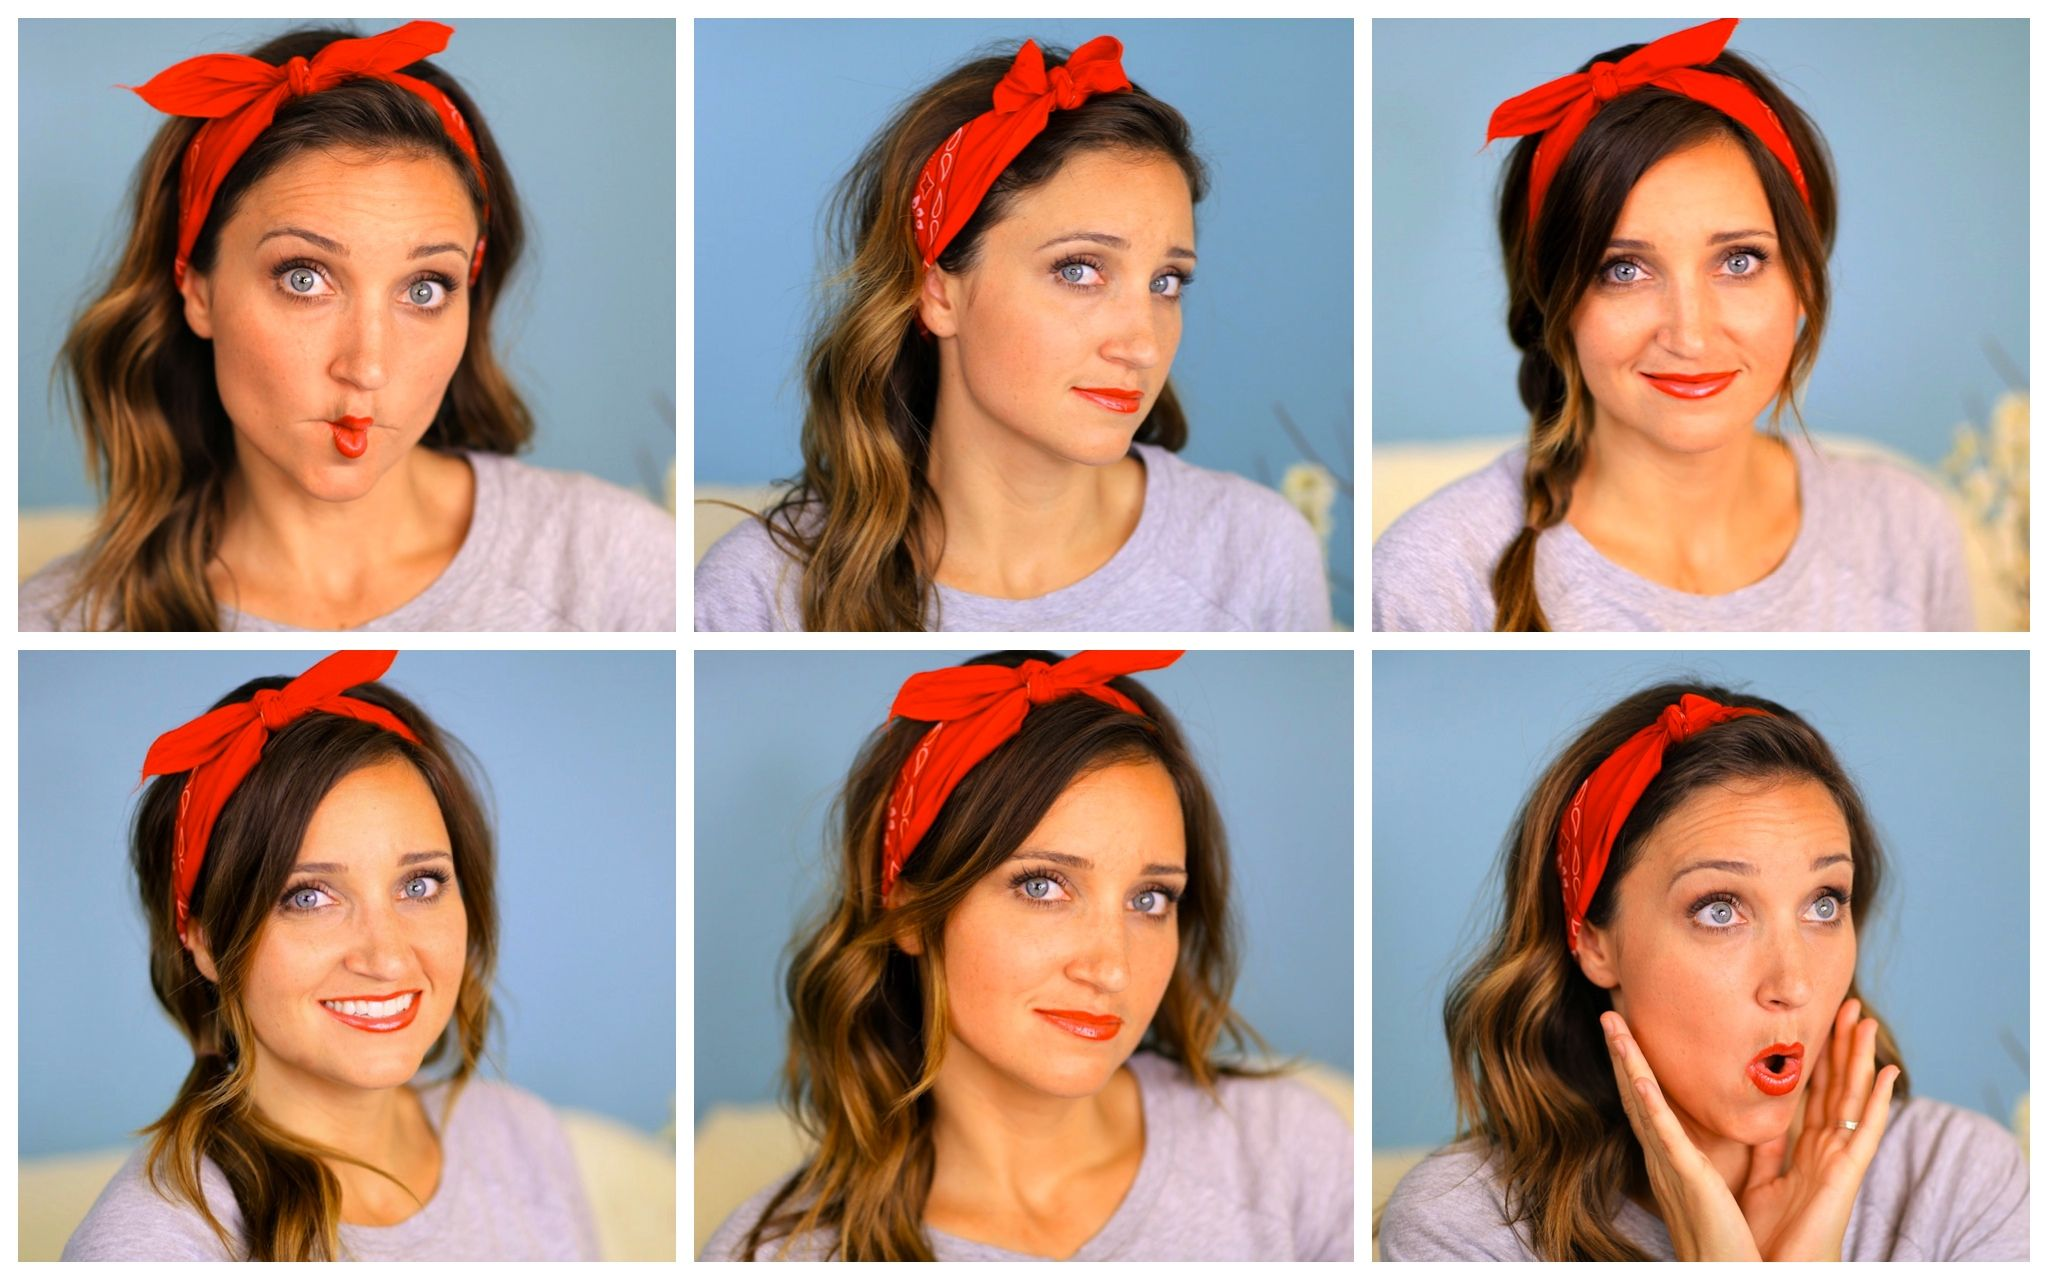 Six Ways to Wear a Bandana Cute Hairstyles and more Hairstyles